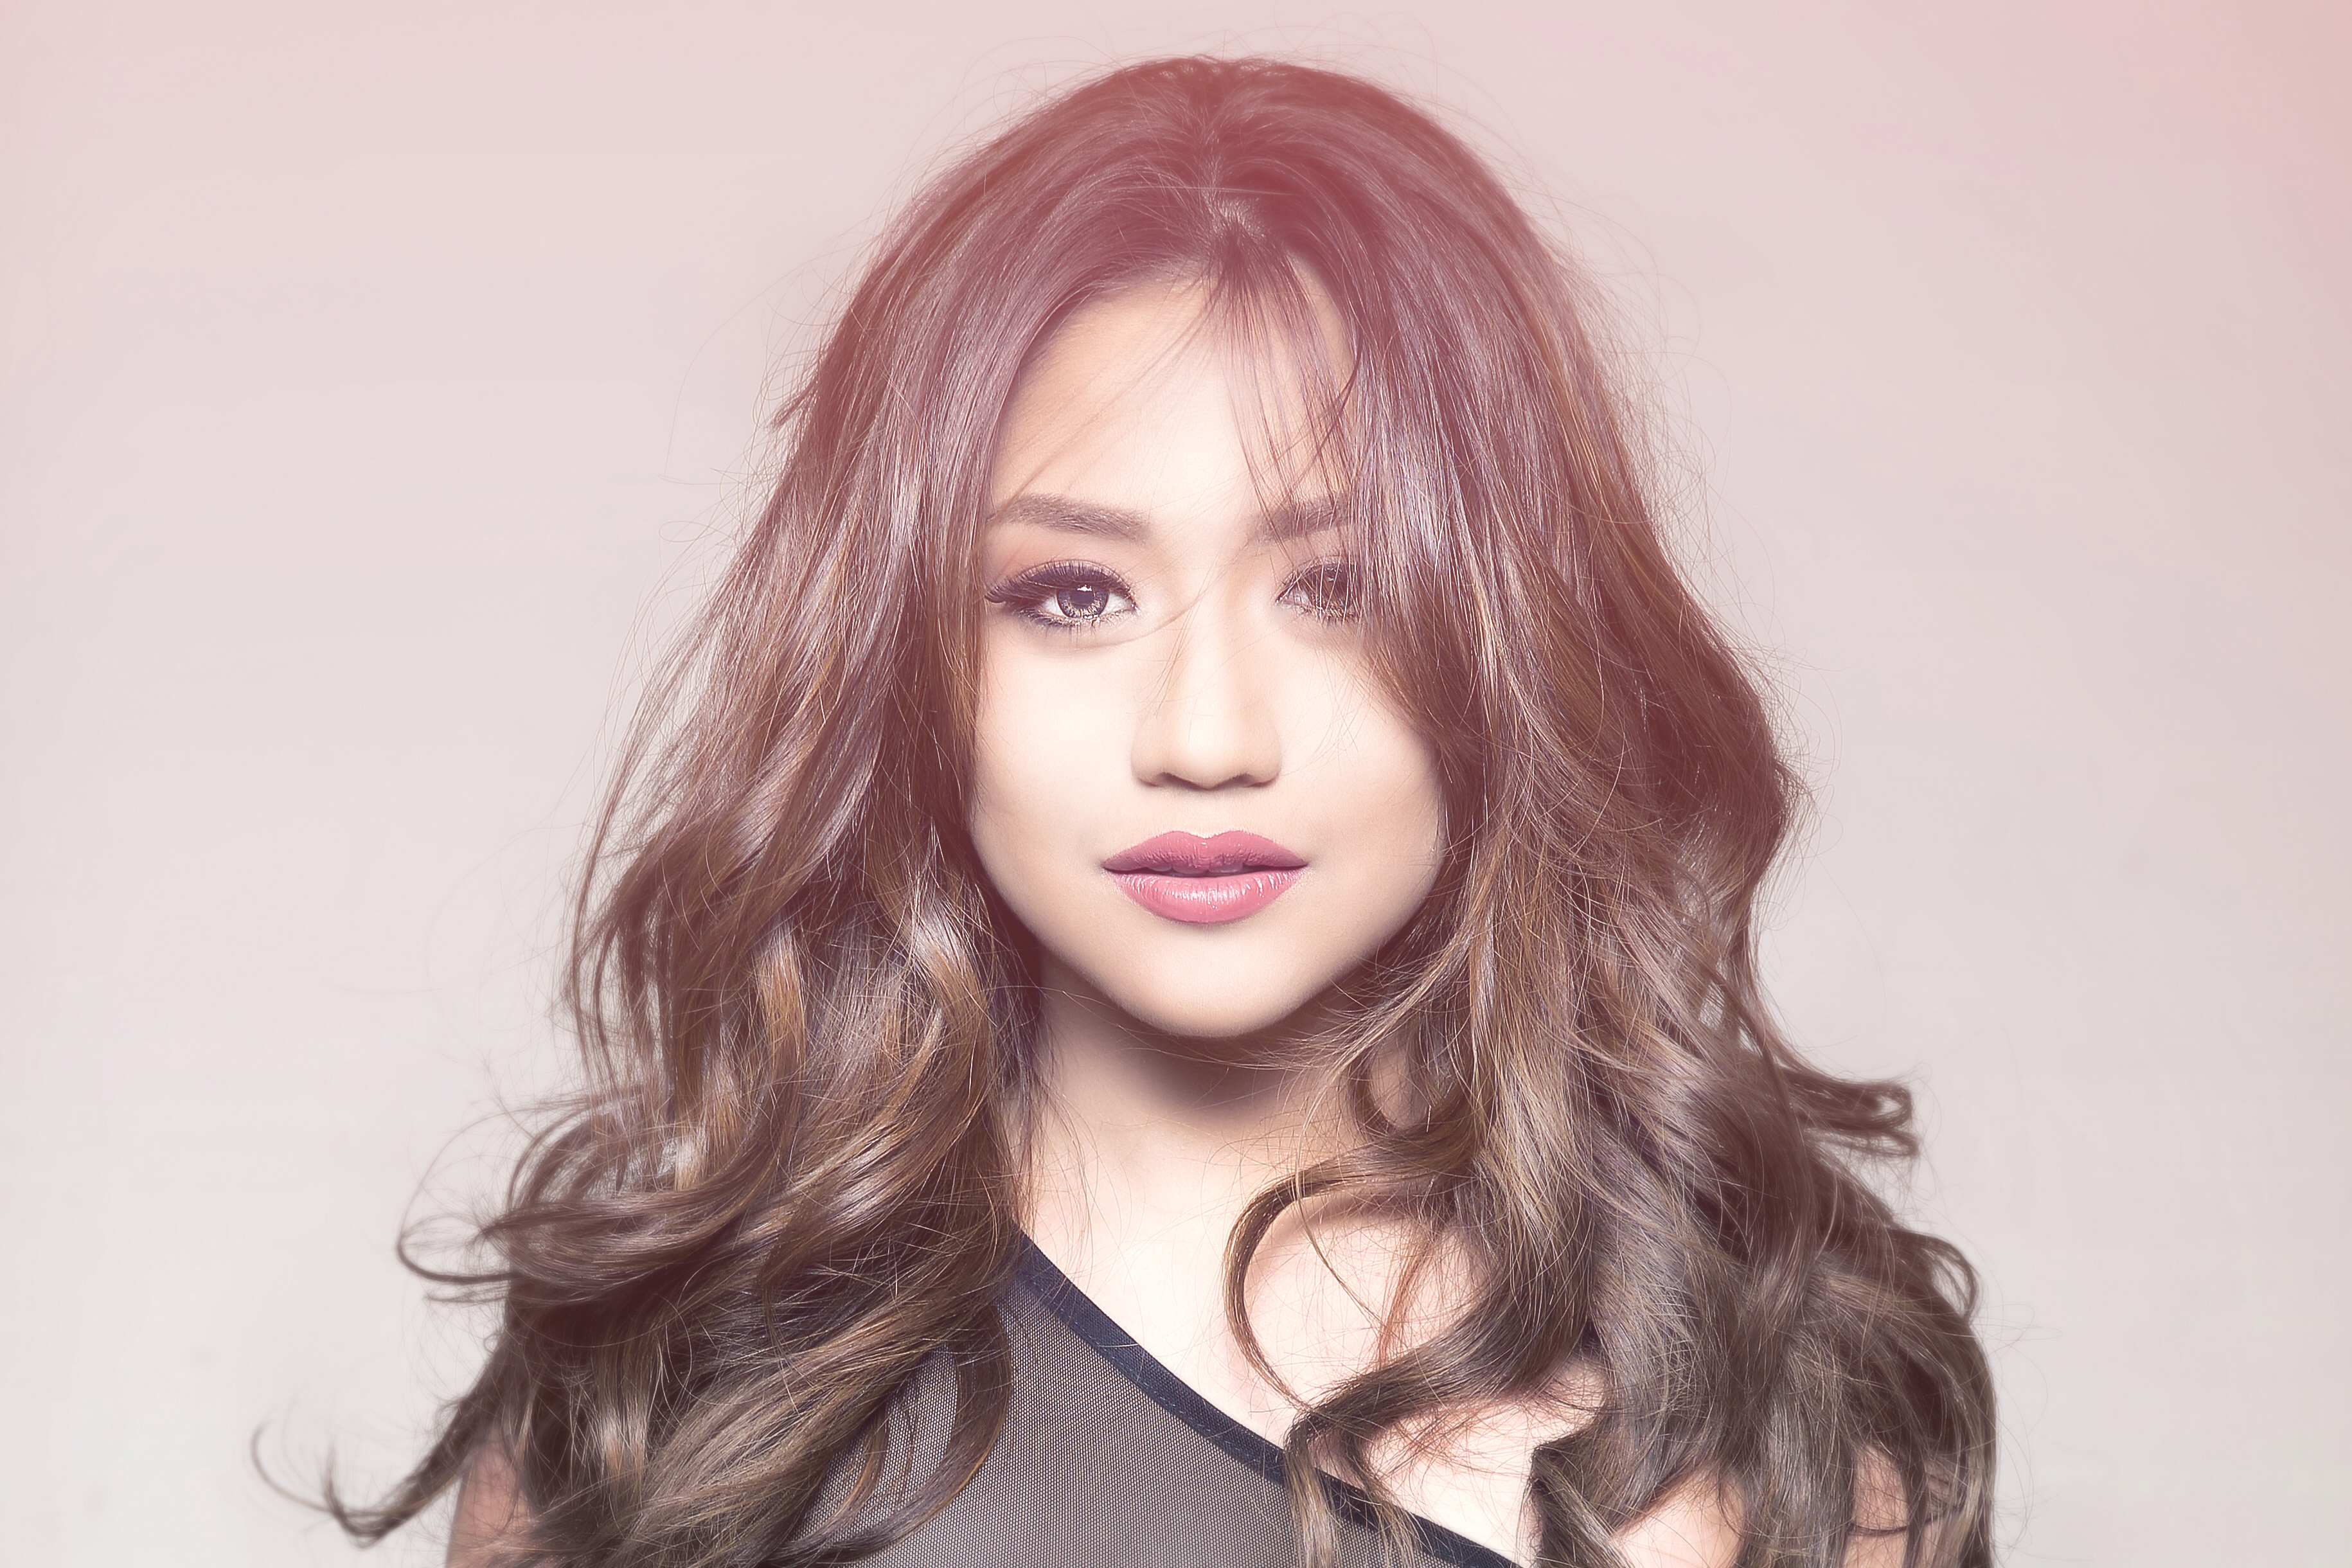 Morissette Amon The Next Big Diva Filipino Star Magazine